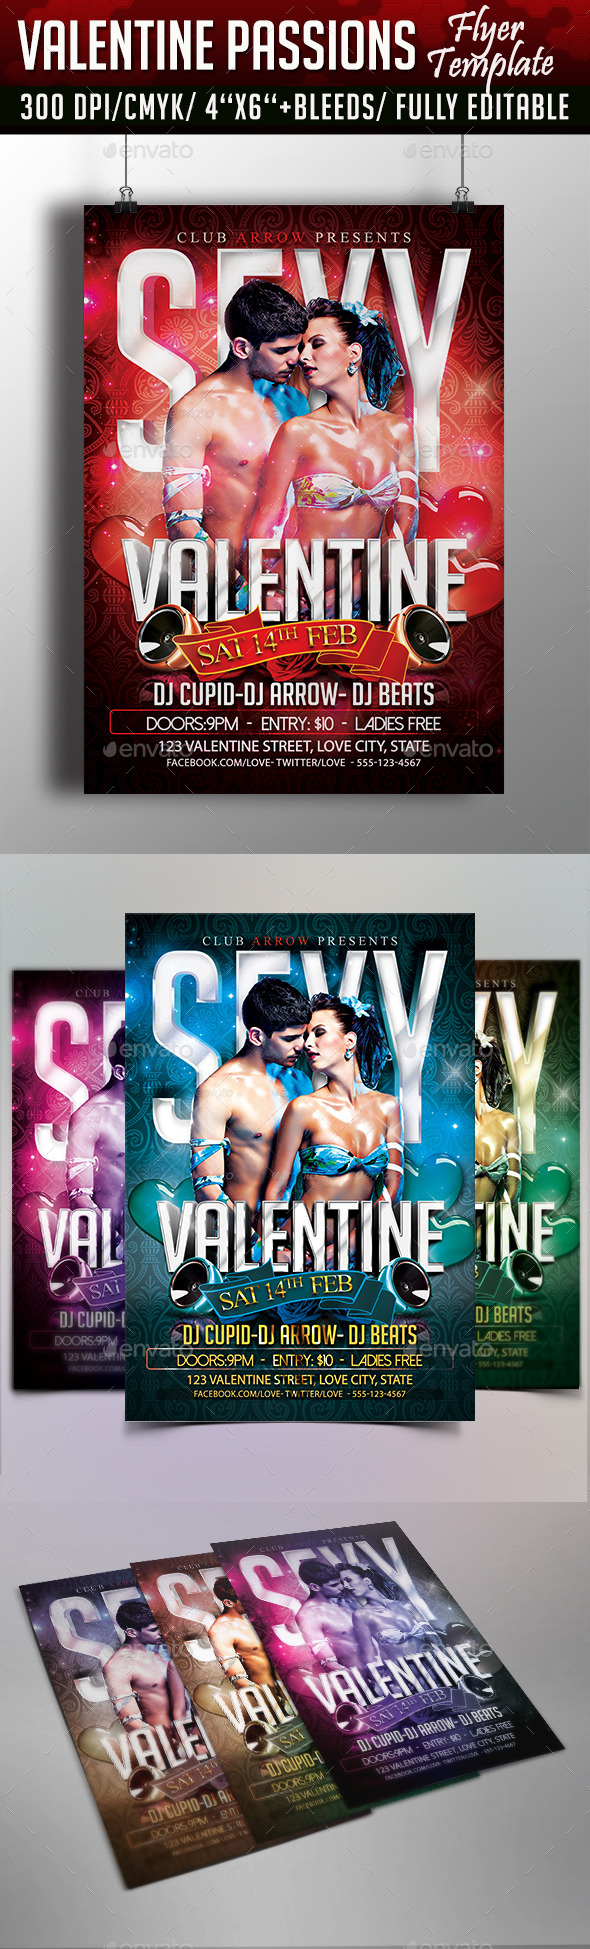 Valentine Passions Flyer Template - Flyers Print Templates